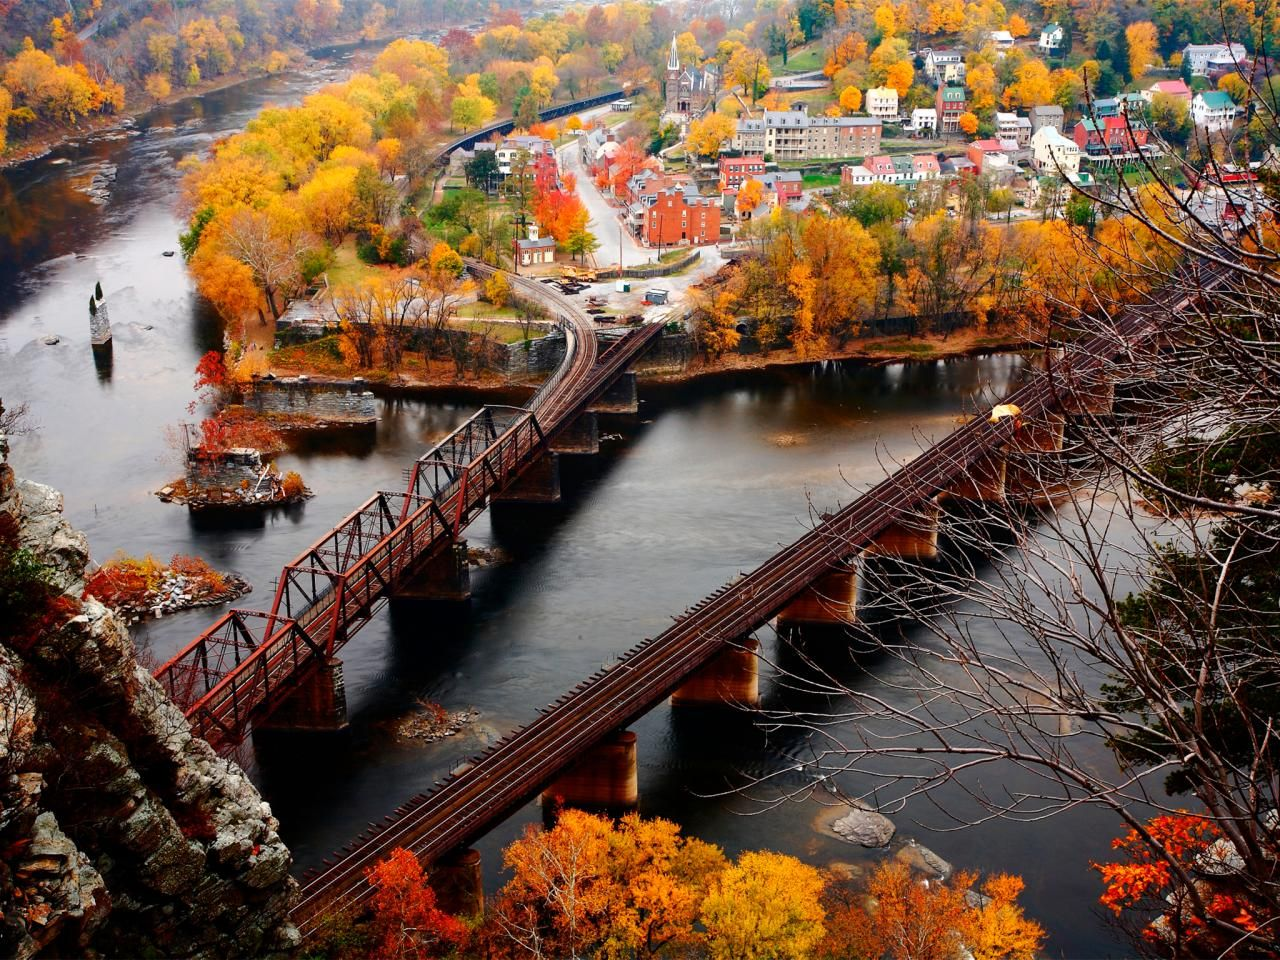 Fall Leaves Live Wallpaper Iphone Harpers Ferry Wv Harpers Ferry West Virginia Harpers